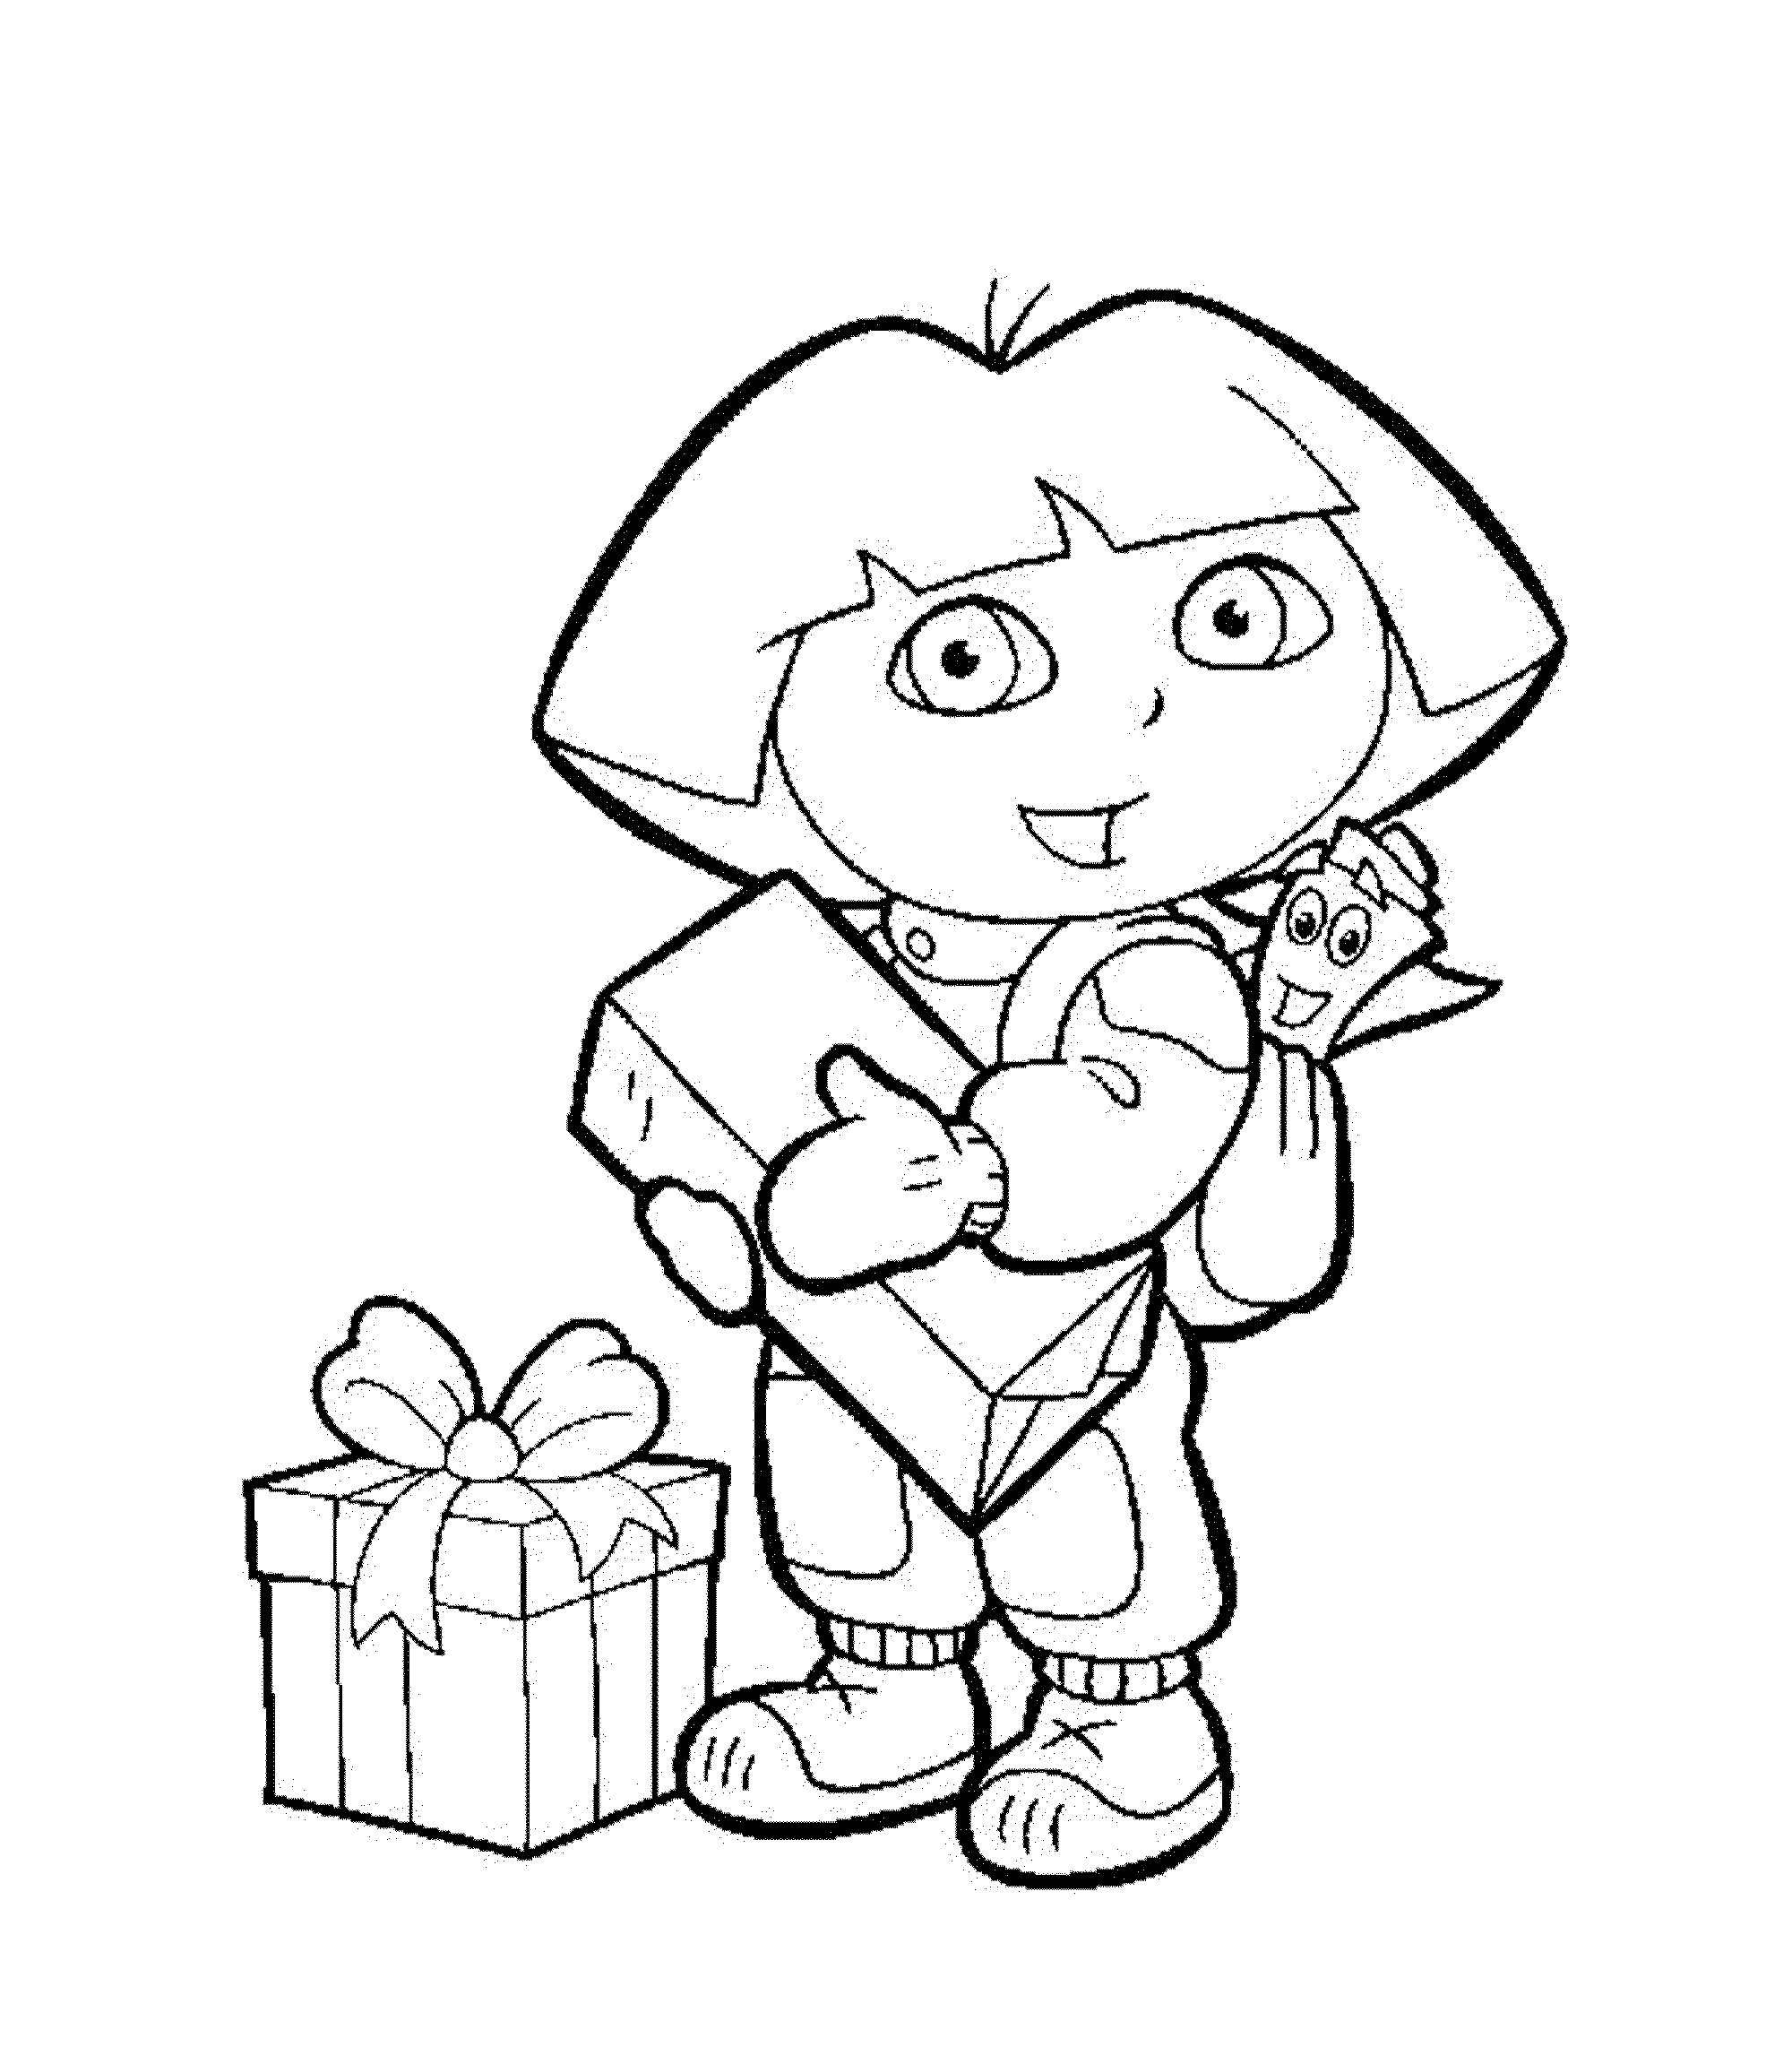 dora colouring print download dora coloring pages to learn new things dora colouring 1 2